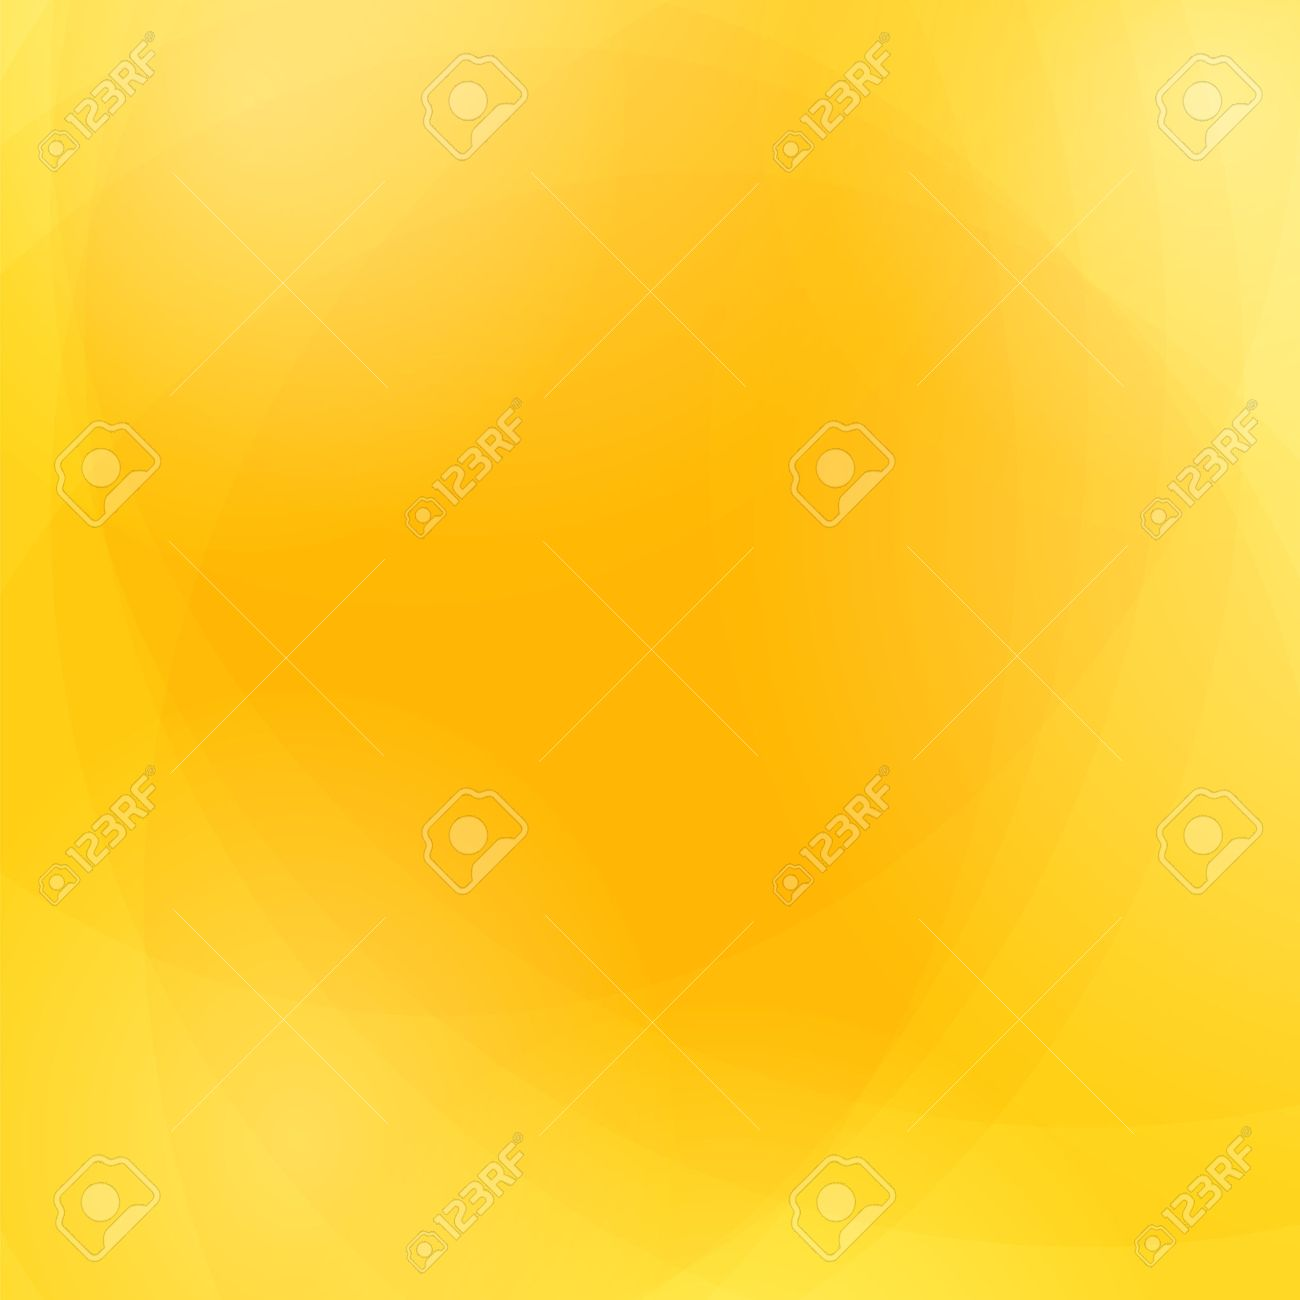 Abstract Yellow Wave Background. Yellow Light Pattern - 46528114